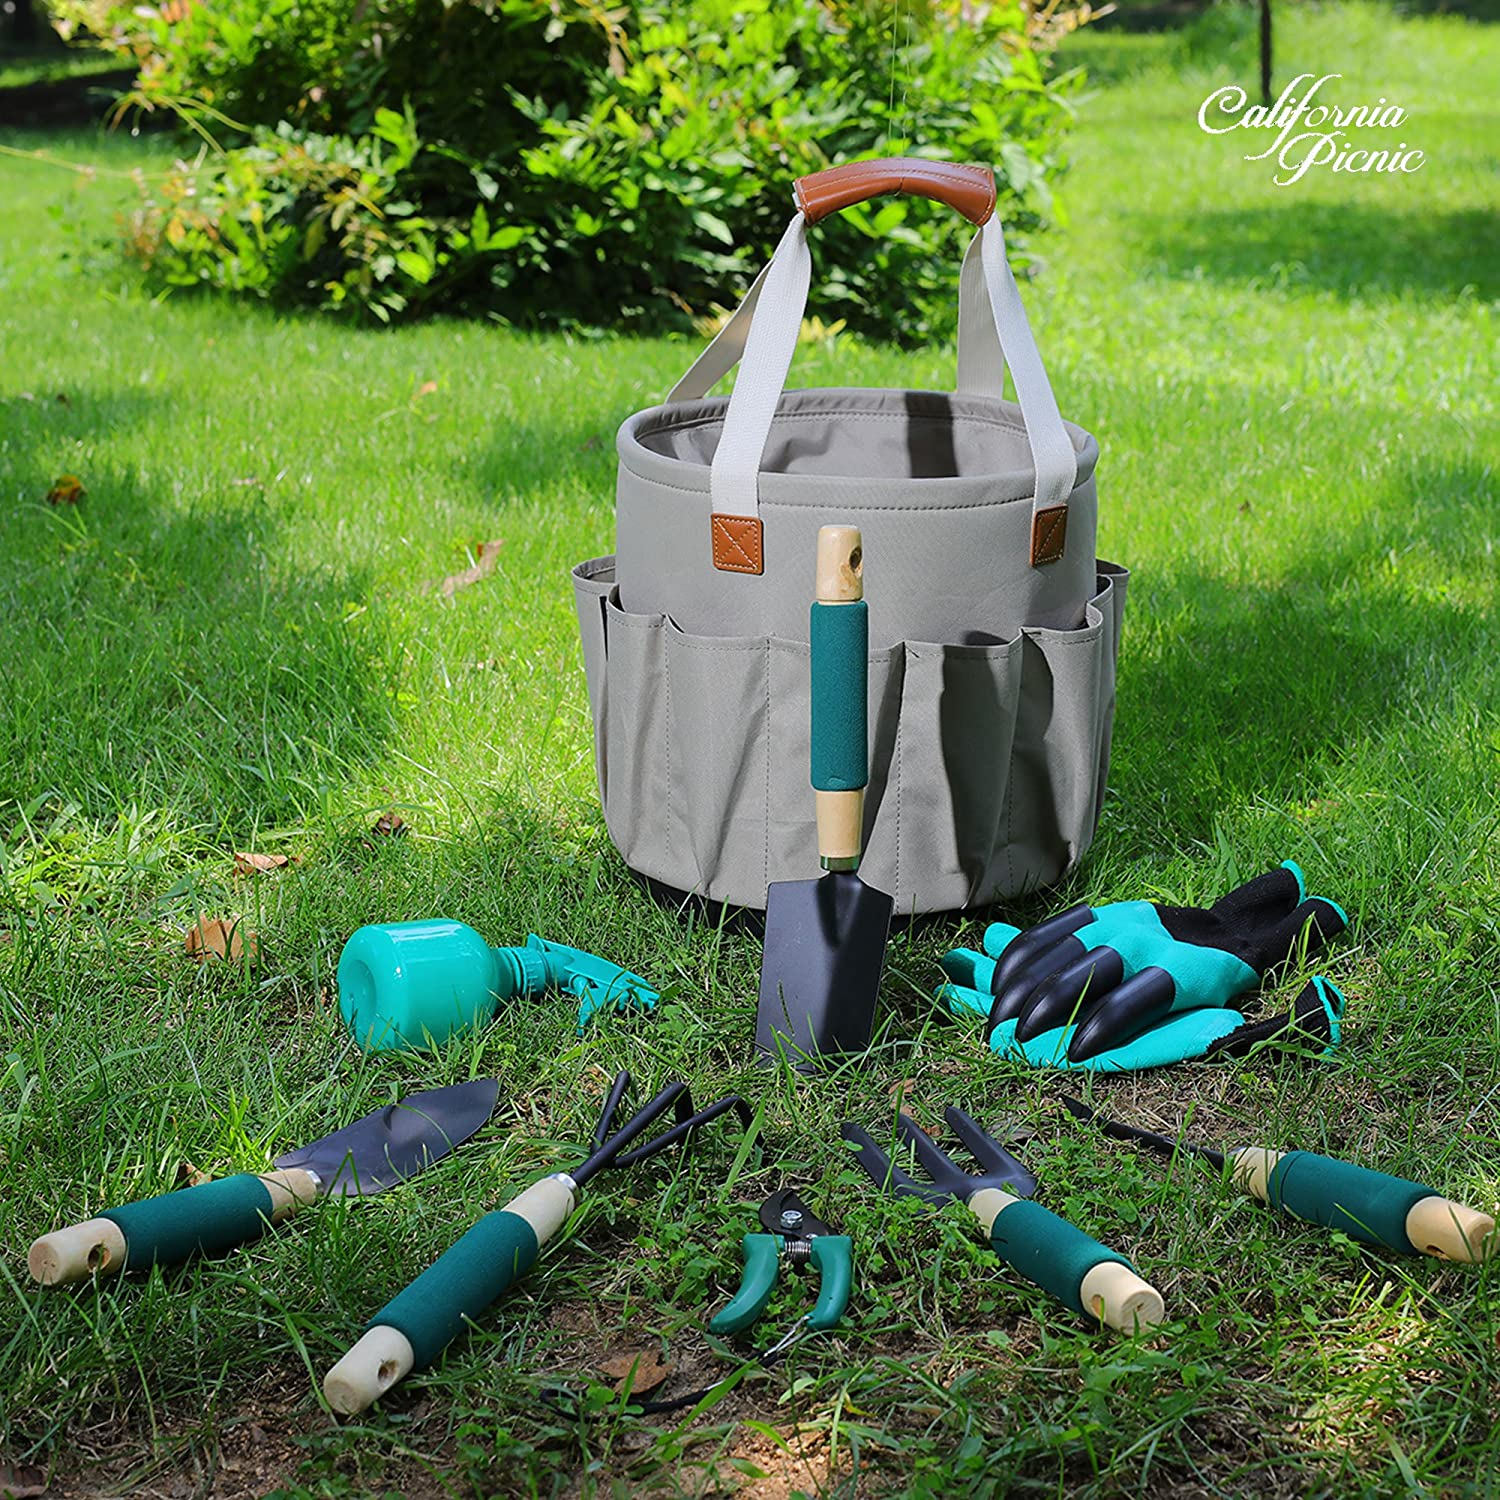 FLORA GUARD Garden Tools Set, 10 Pieces Gardening Tools Hand Tools Garden Gifts Multifunctional Set with a Kit